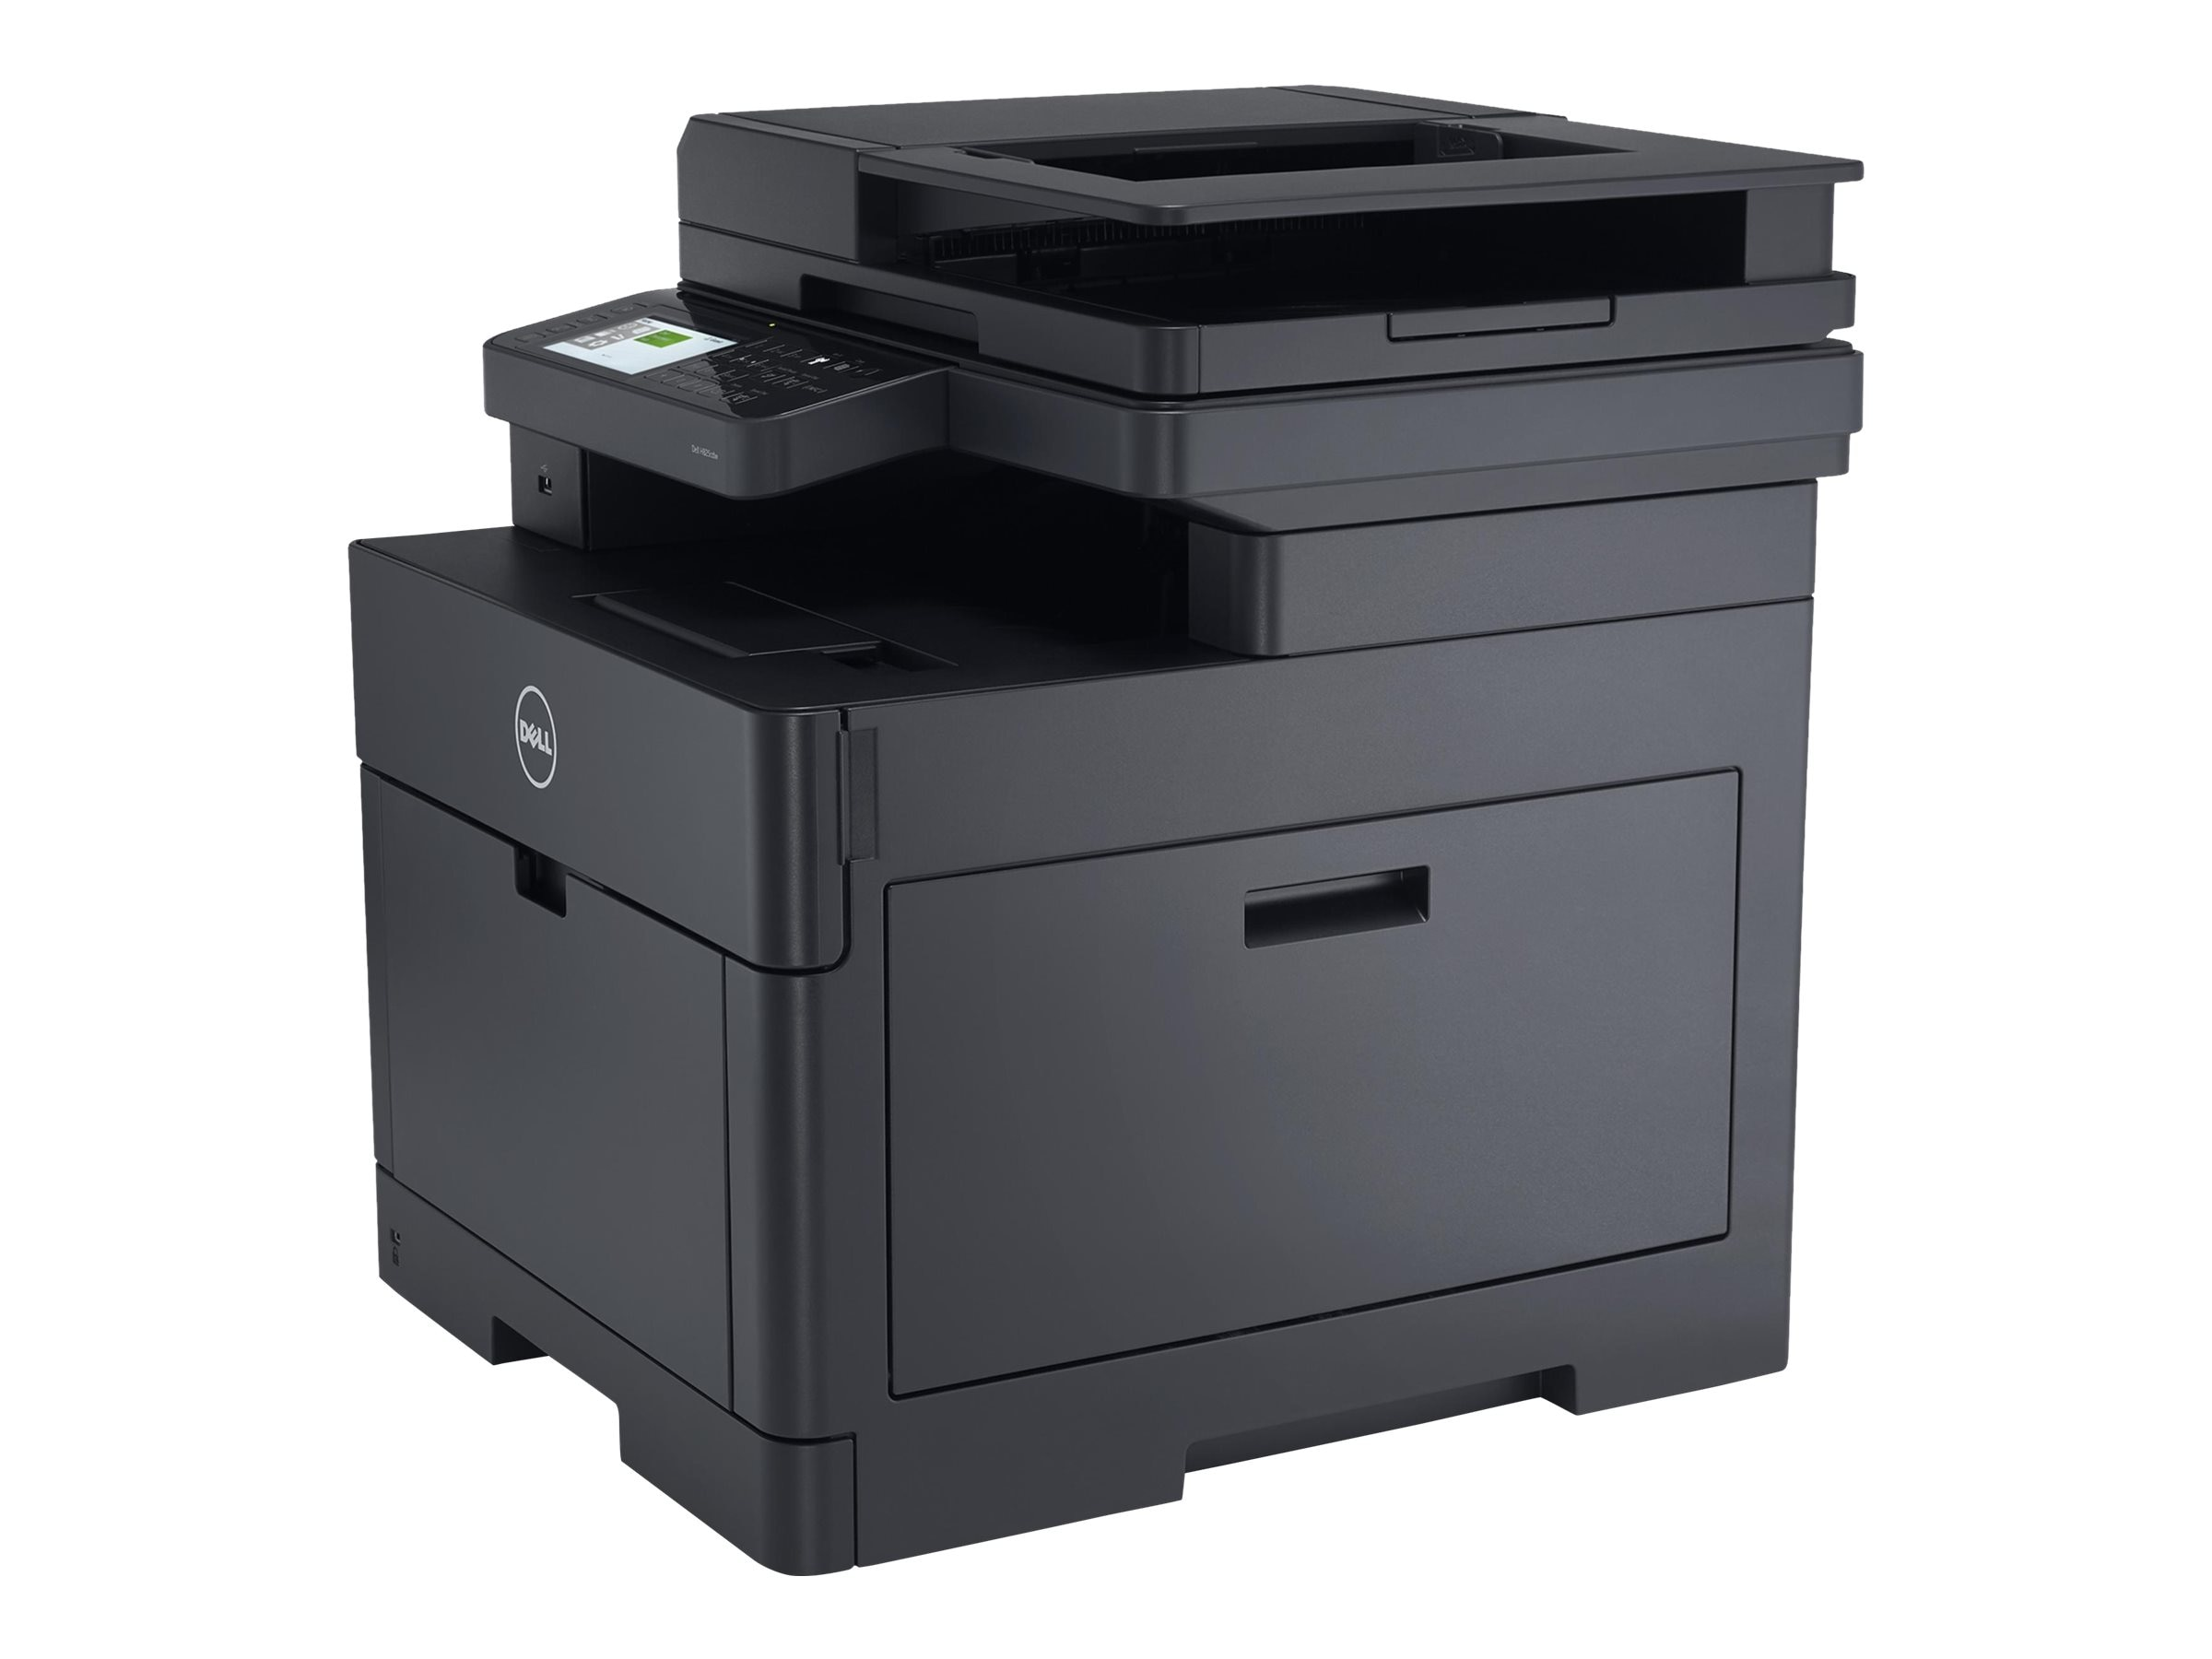 Dell Color Cloud Multifinction Printer - H825cdw, H825CDW